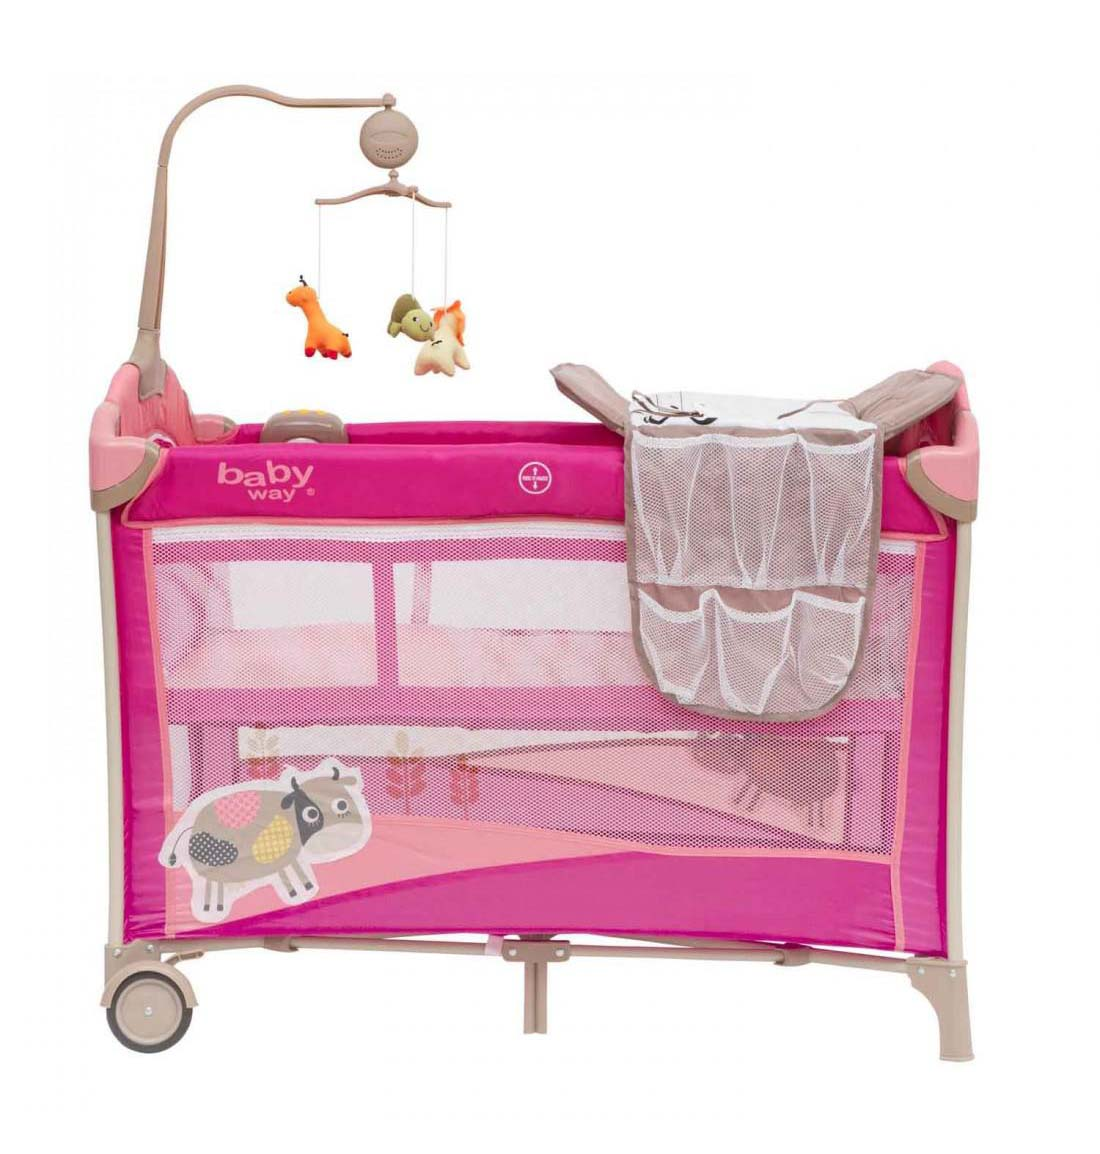 Cuna Pack & Play Baby Way Rosado